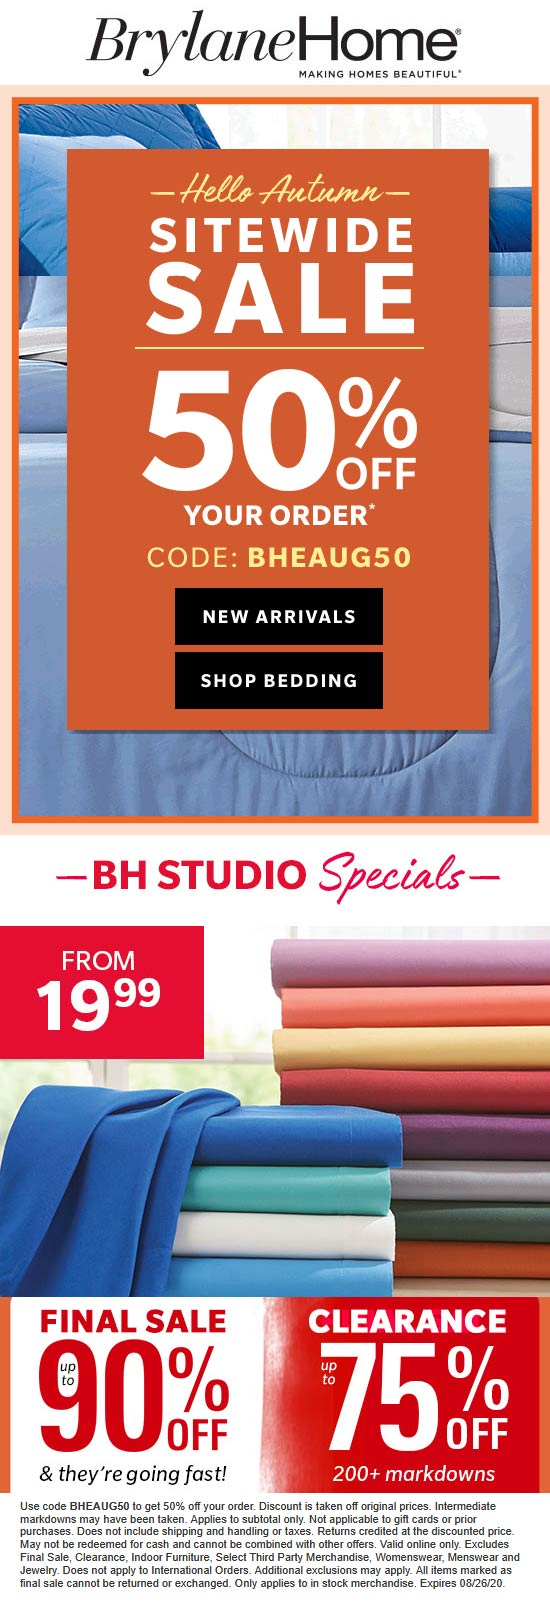 Brylane Home stores Coupon  50% off everything at Brylane Home via promo code BHEAUG50 #brylanehome